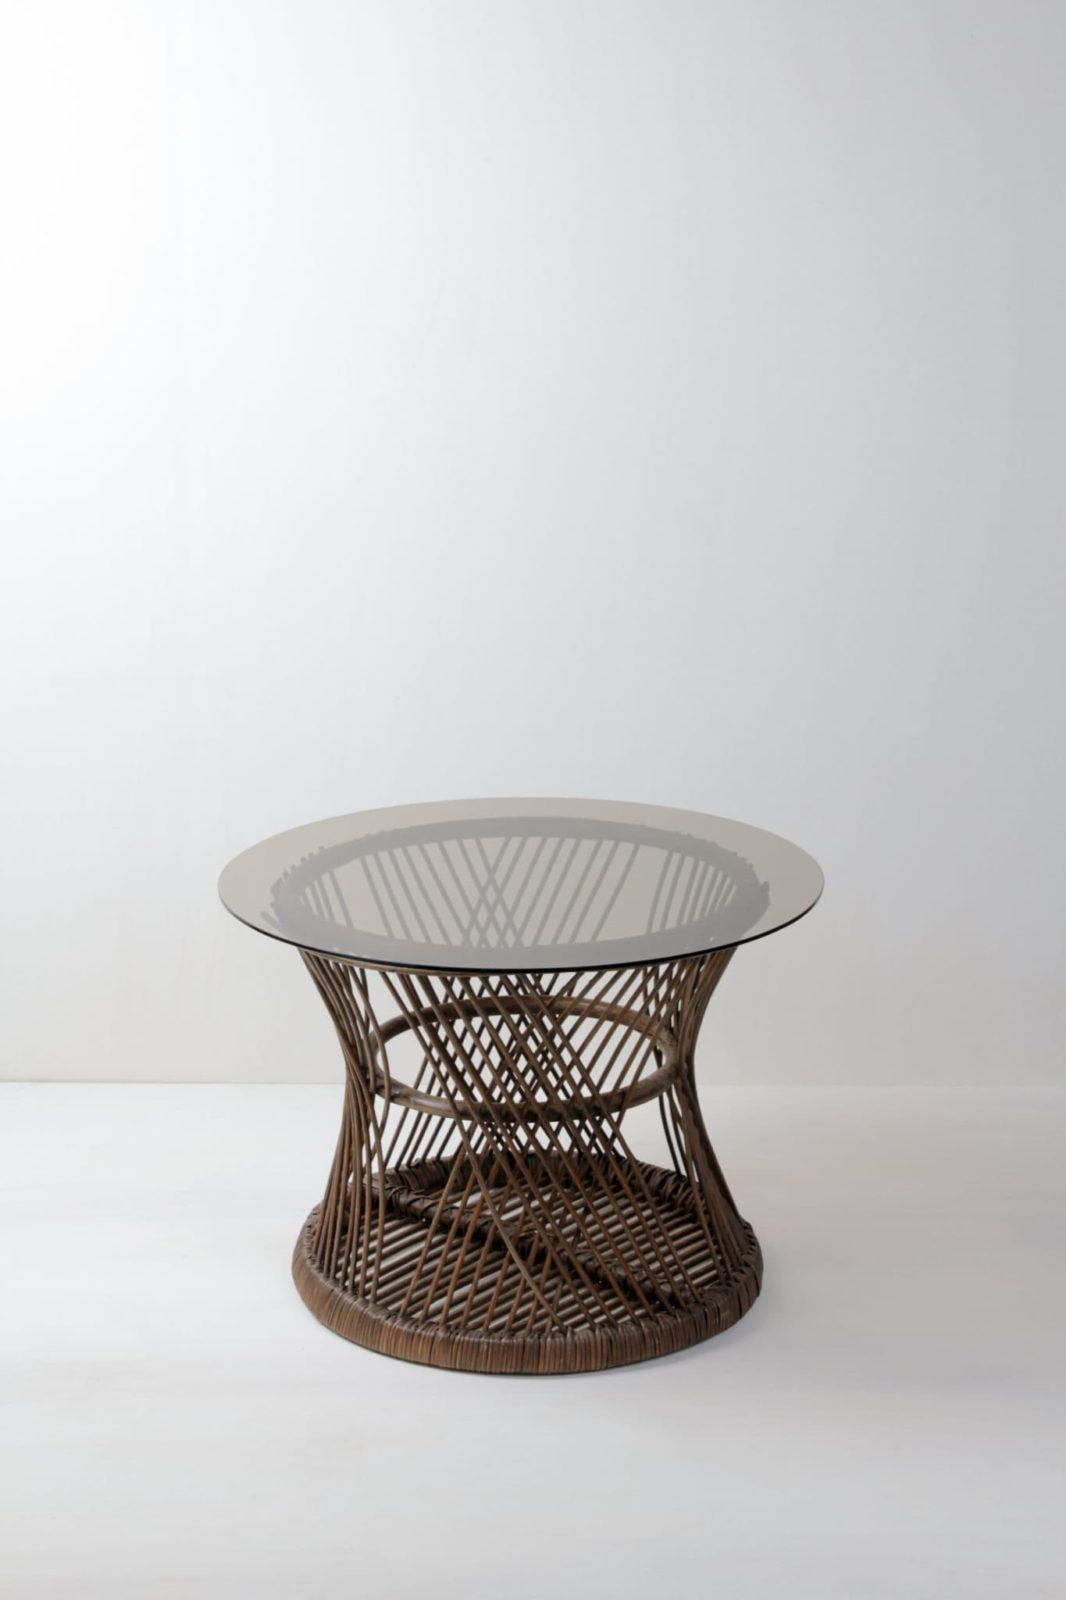 Wicker Side Table Nestor | Vintage wicker side table with a tabletop made of glass. | gotvintage Rental & Event Design